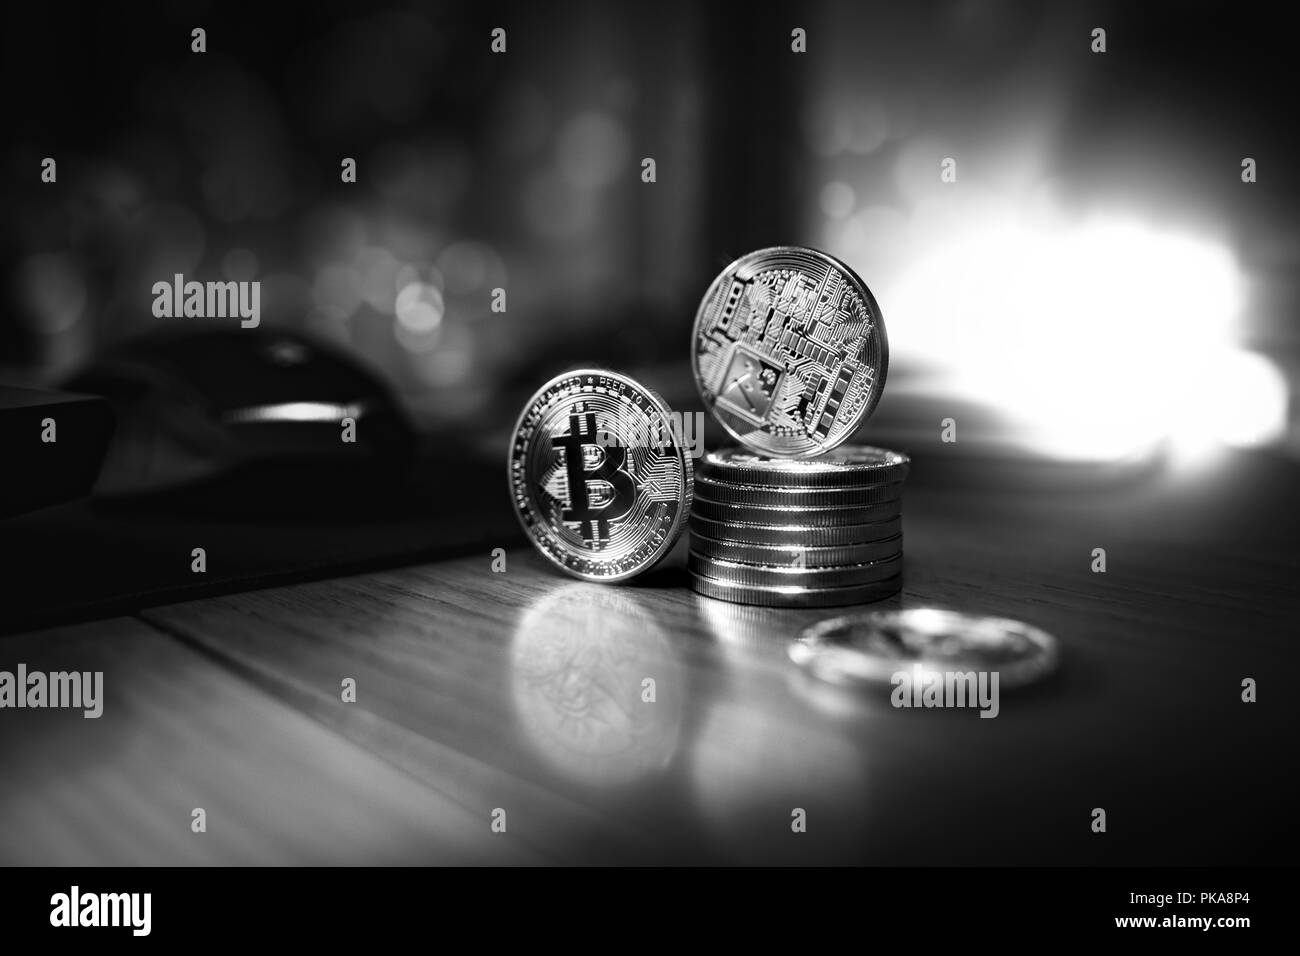 Bitcoin money lies on the wooden table and shine like a diamond in the darkness. - Stock Image